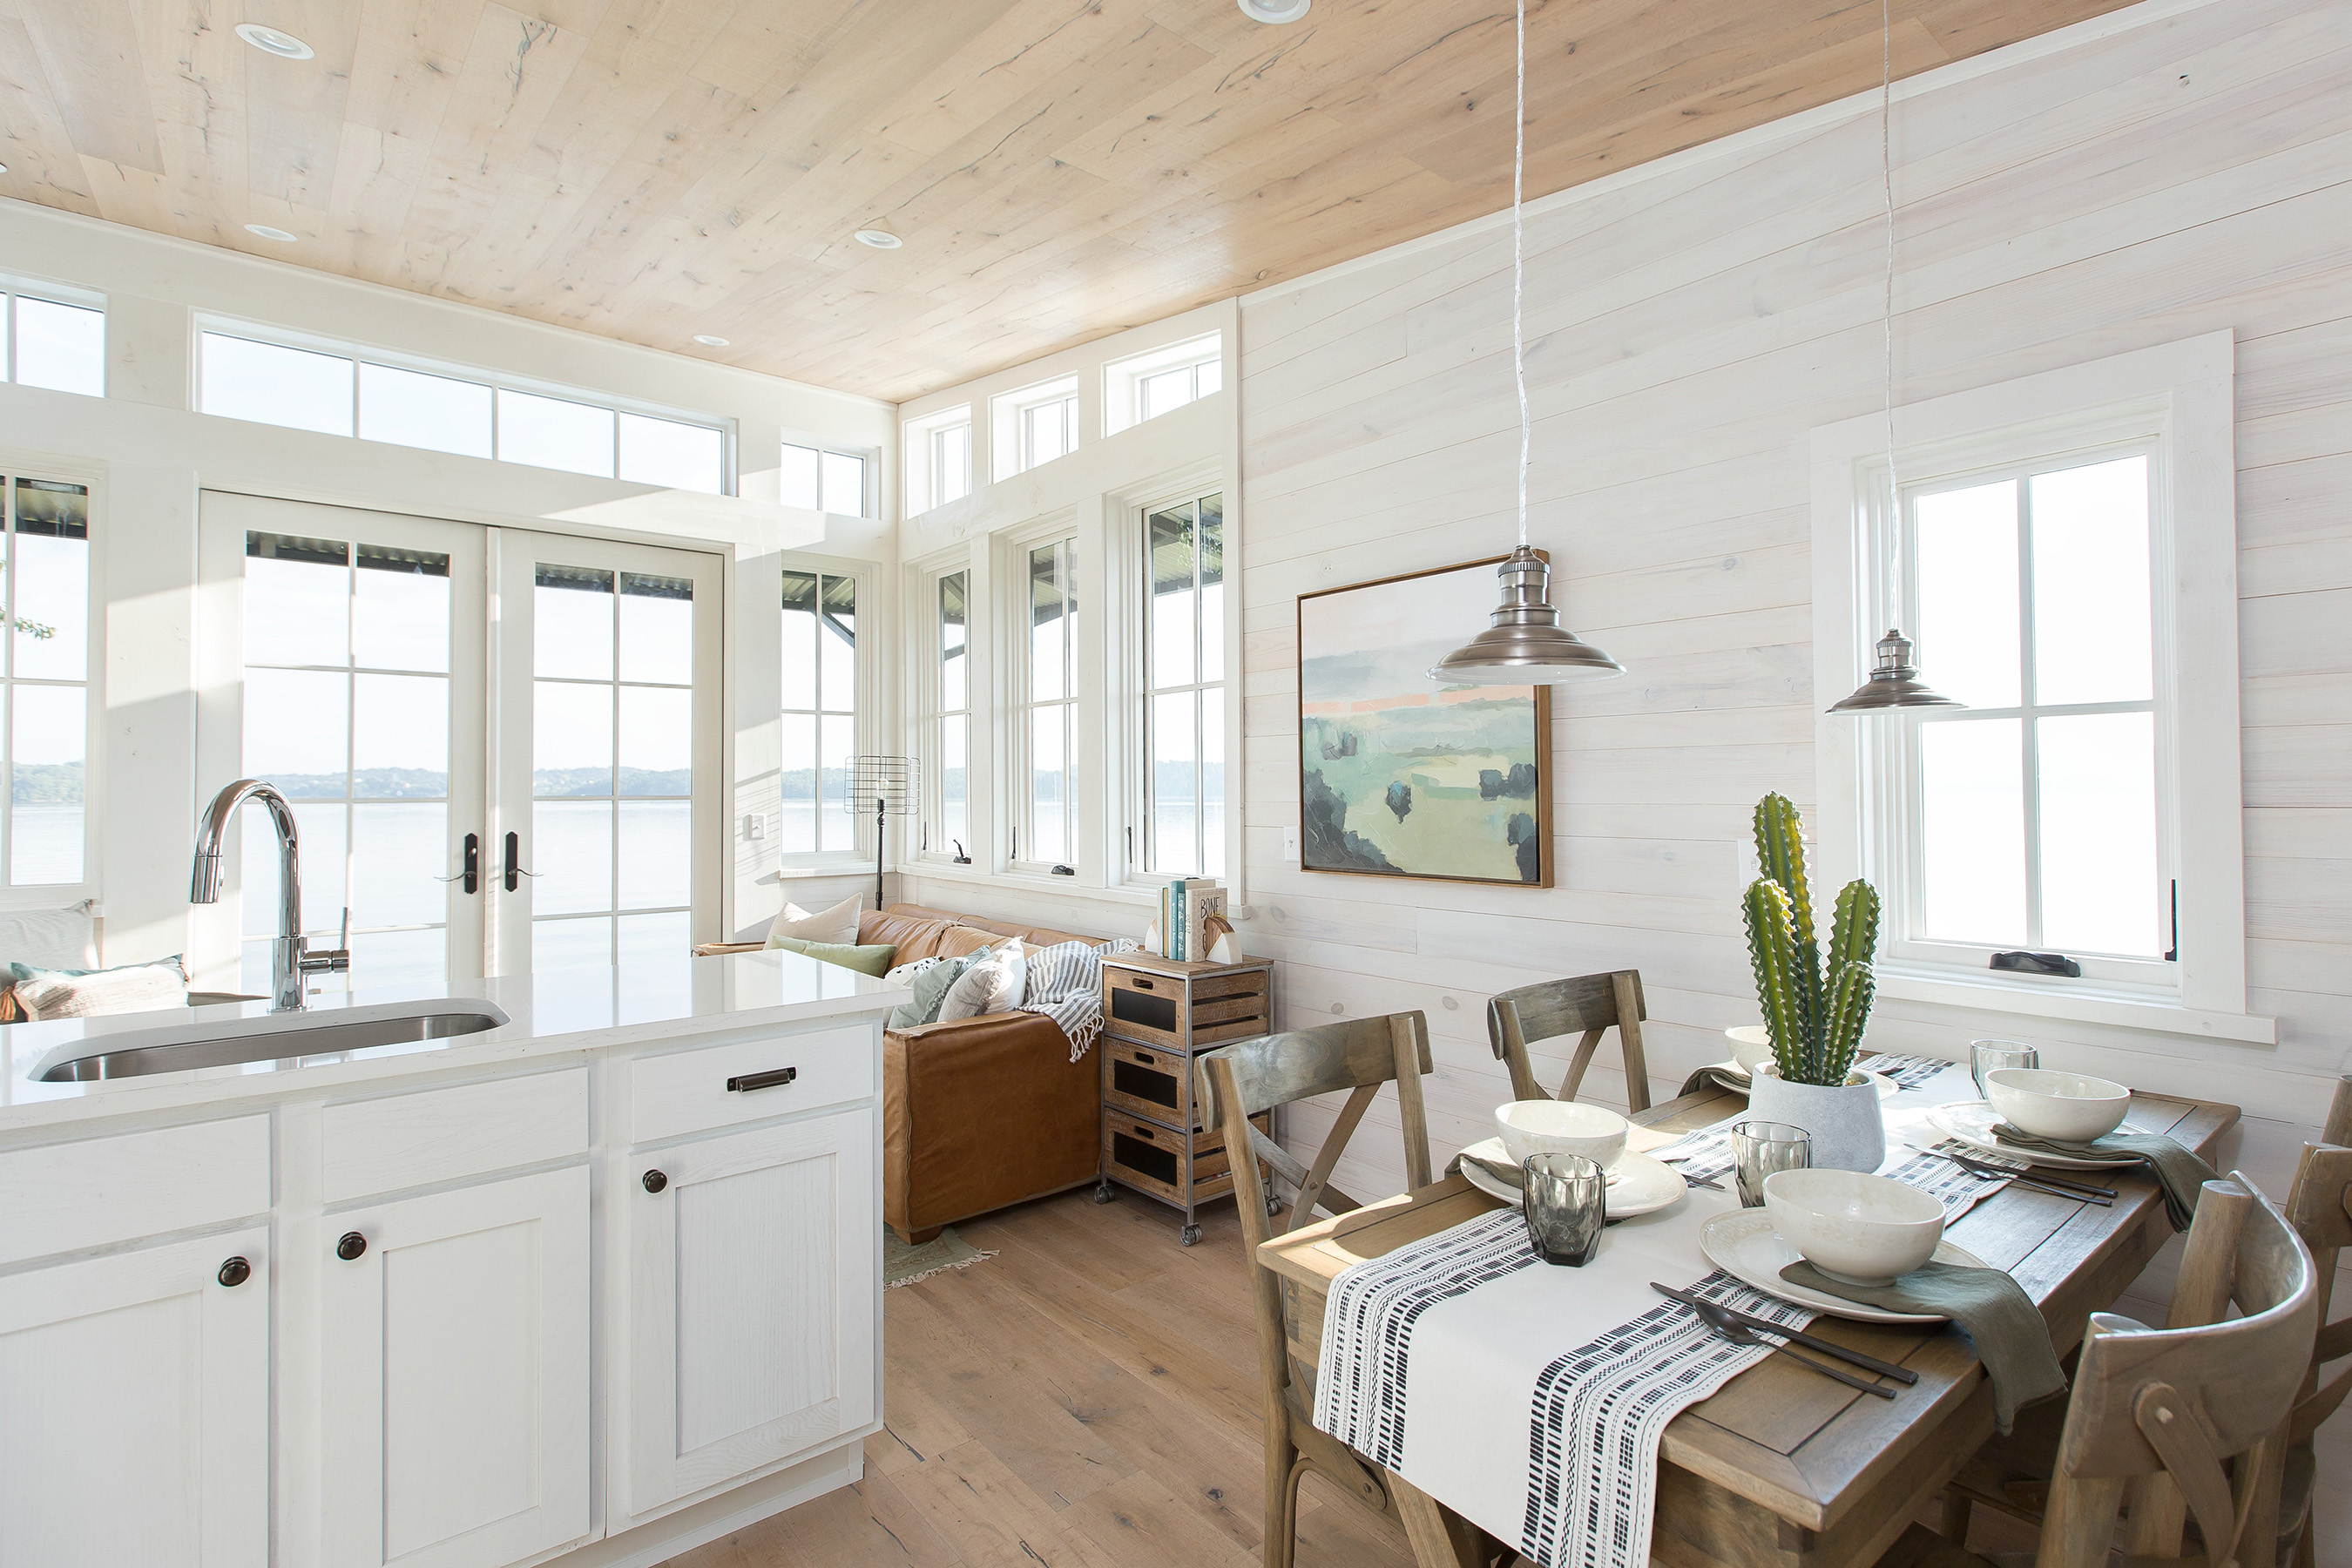 The Saltbox incorporates elegant, modern design features and top-of-the-line appliances.